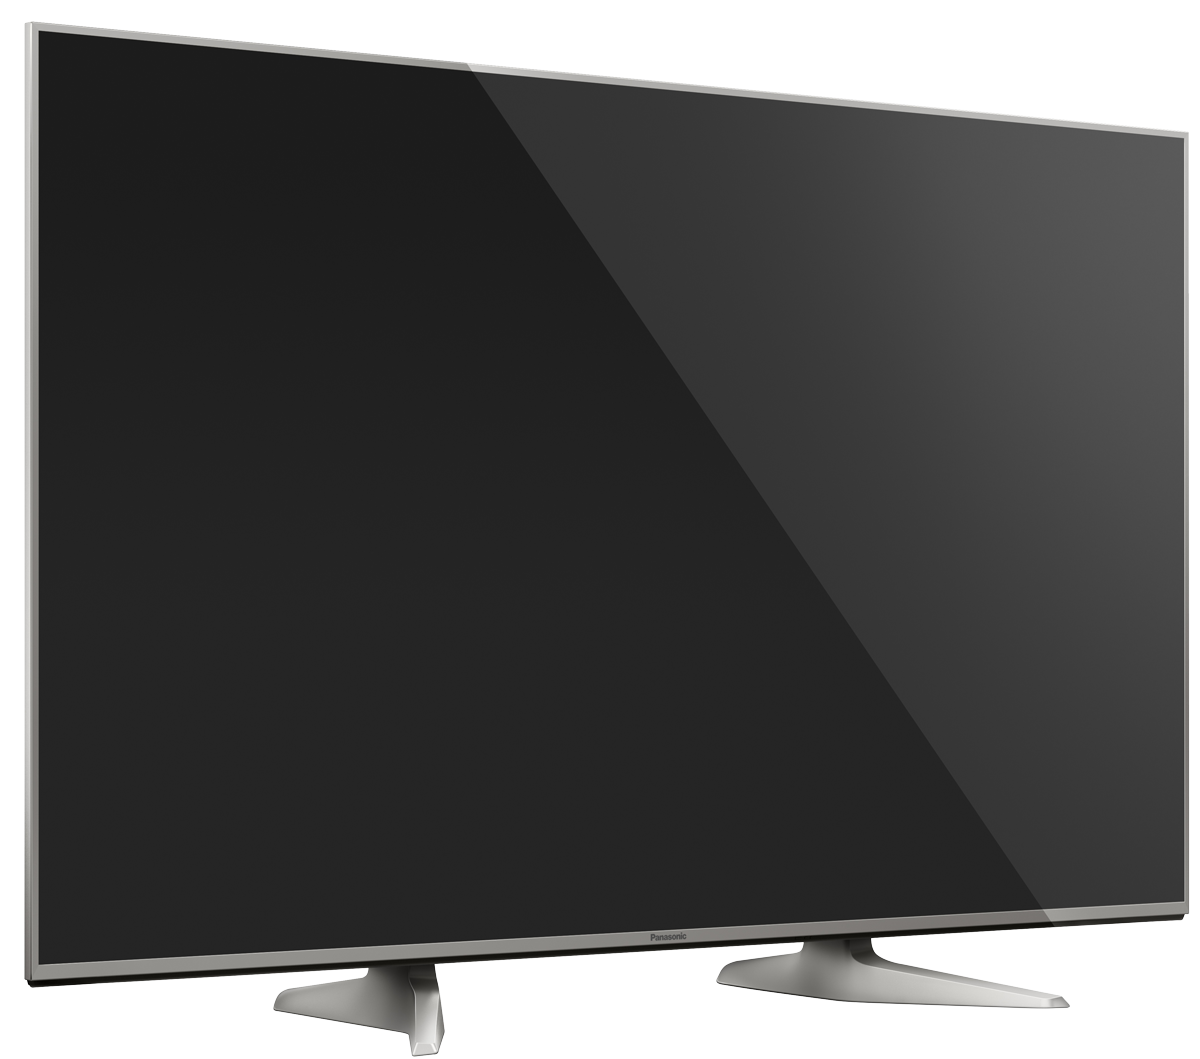 panasonic tx 50dxm715 lcd led tv 50 1600 hz silber. Black Bedroom Furniture Sets. Home Design Ideas